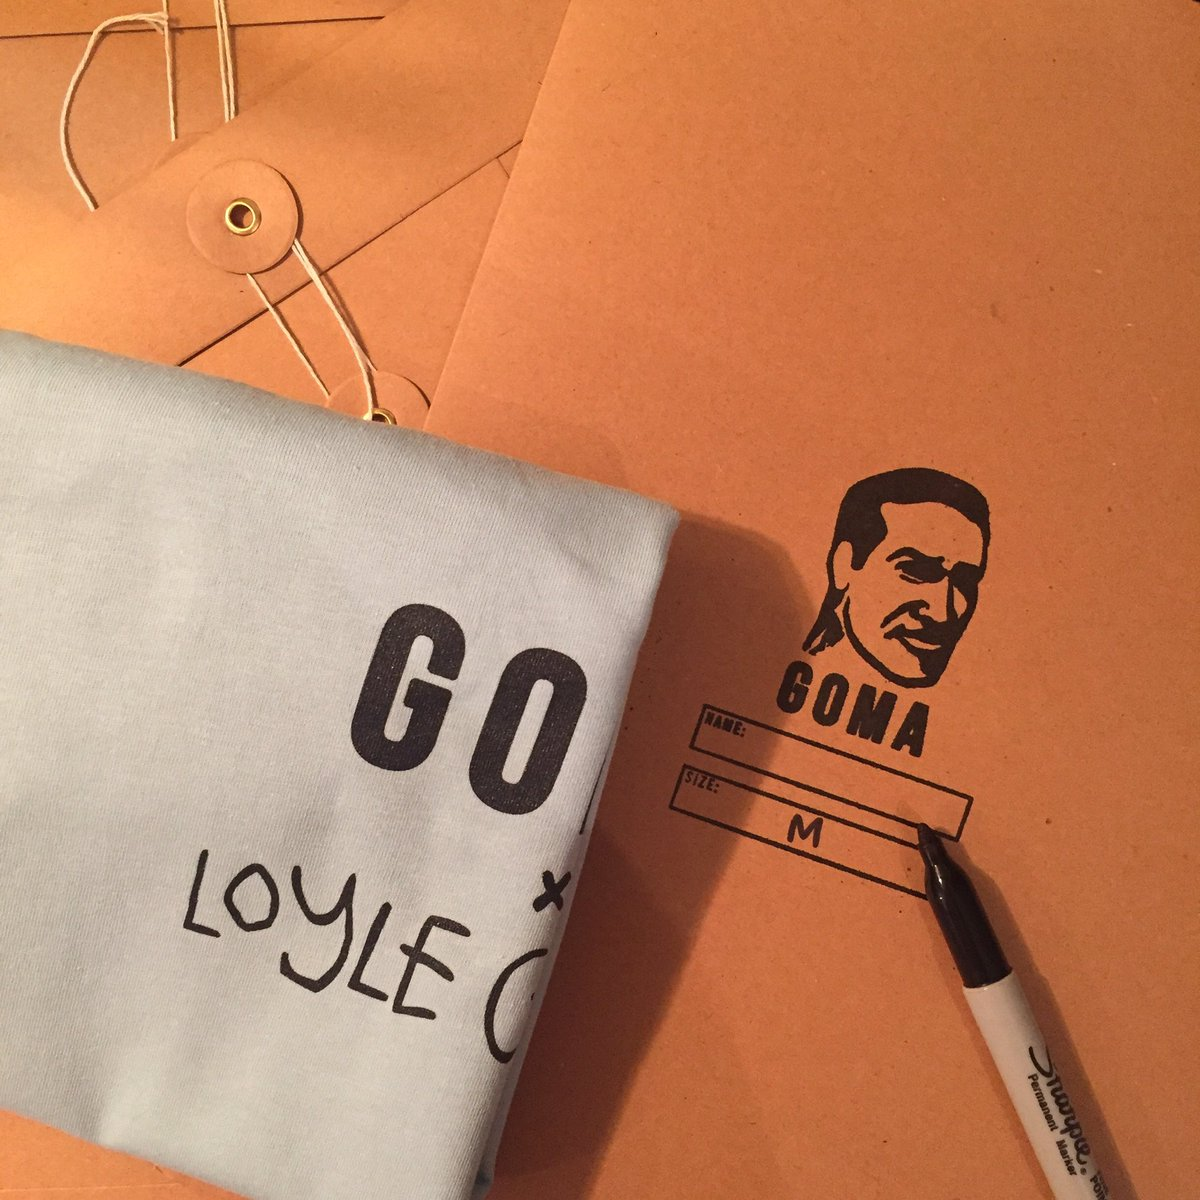 Our tee and zine with @LoyleCarner just dropped online - be quick gomacollective.com 💨💨